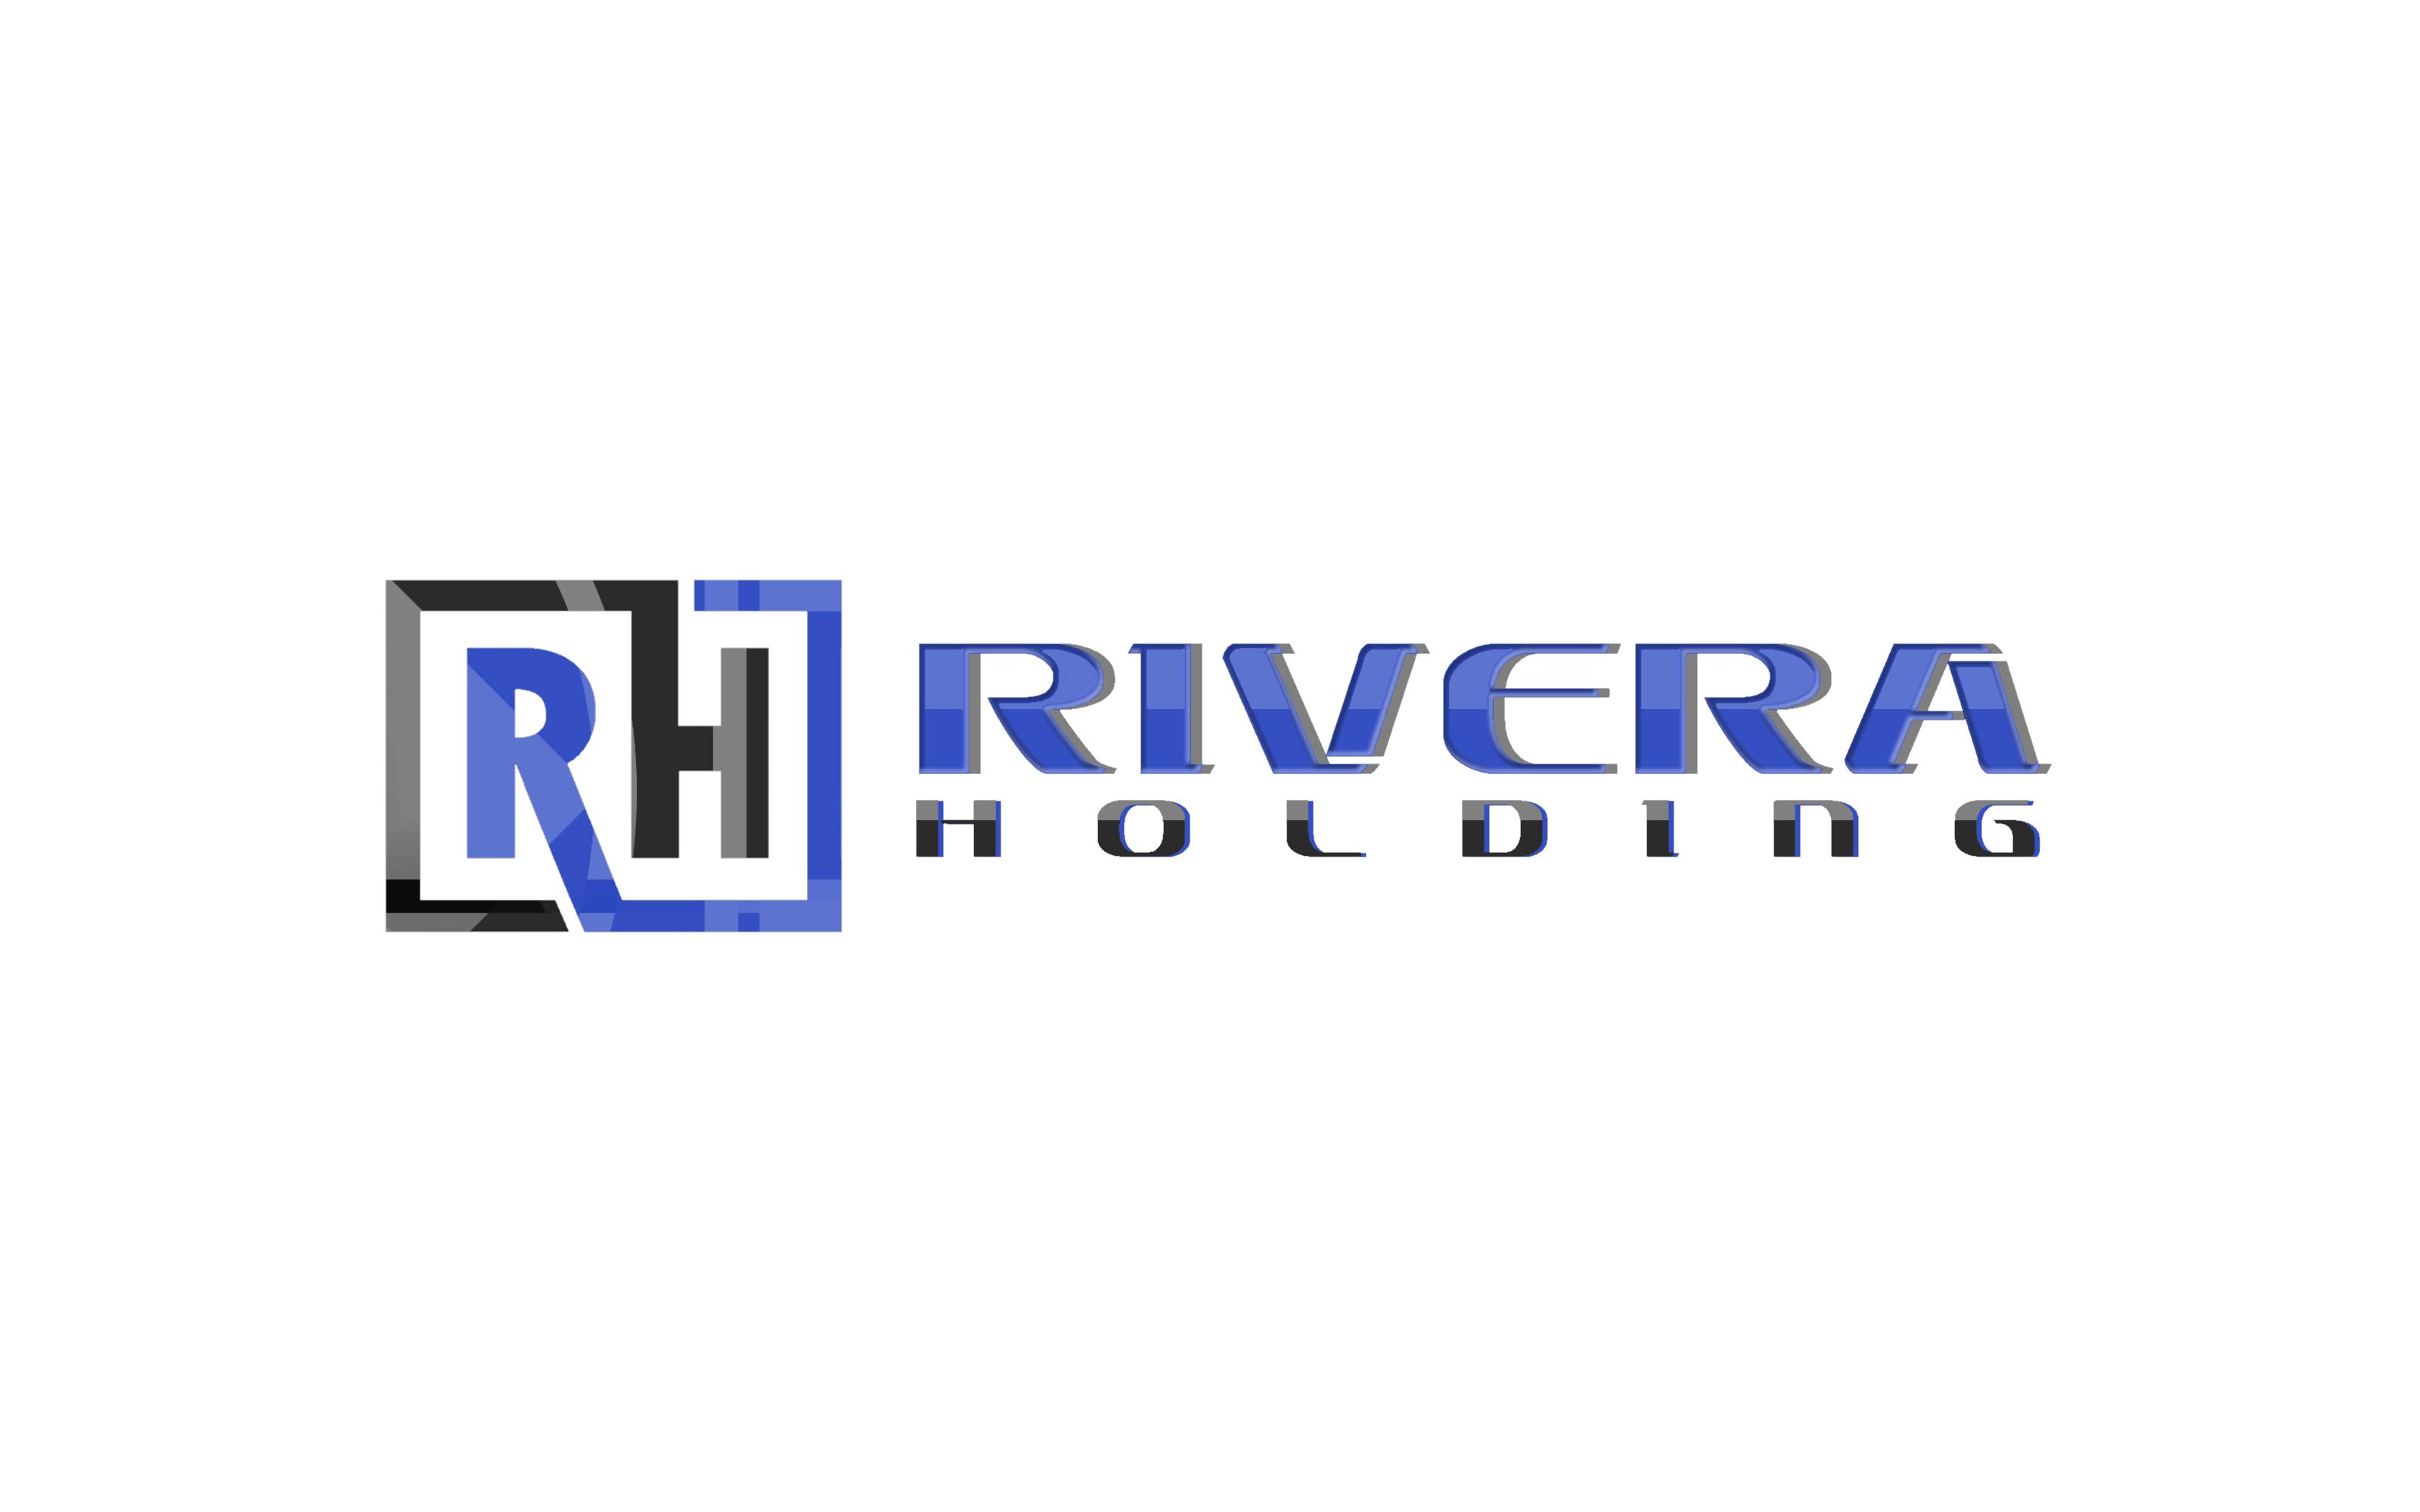 Logo Design by Roberto Bassi - Entry No. 89 in the Logo Design Contest RIVERA HOLDING Logo Design.